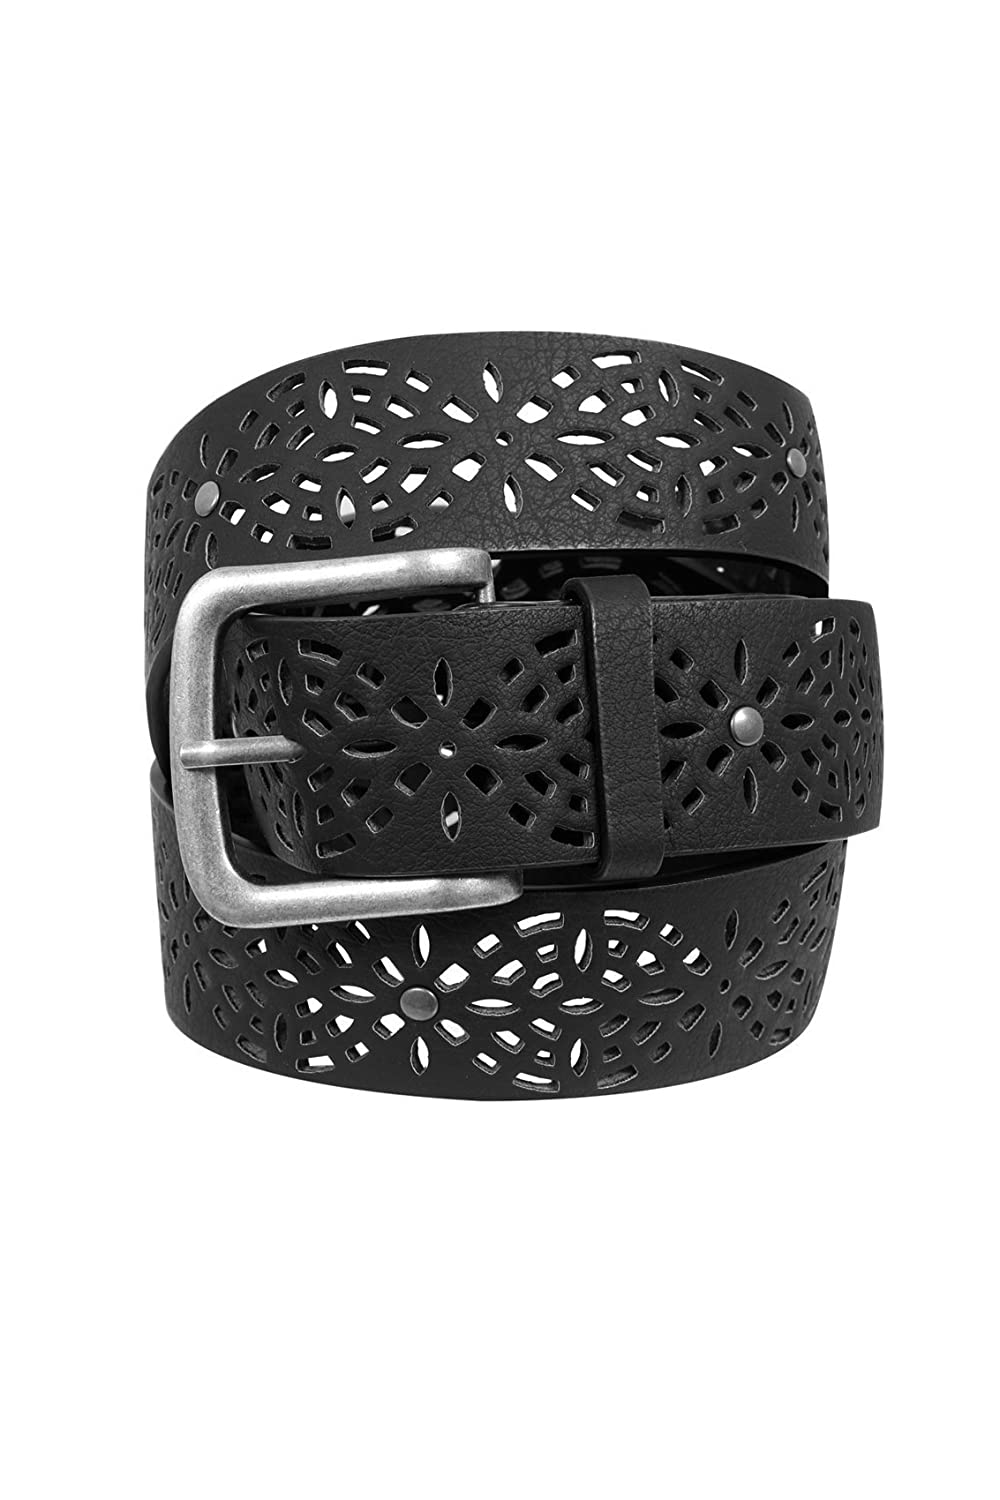 Yoursclothing Womens Laser Cut Floral Belt With Silver Buckle